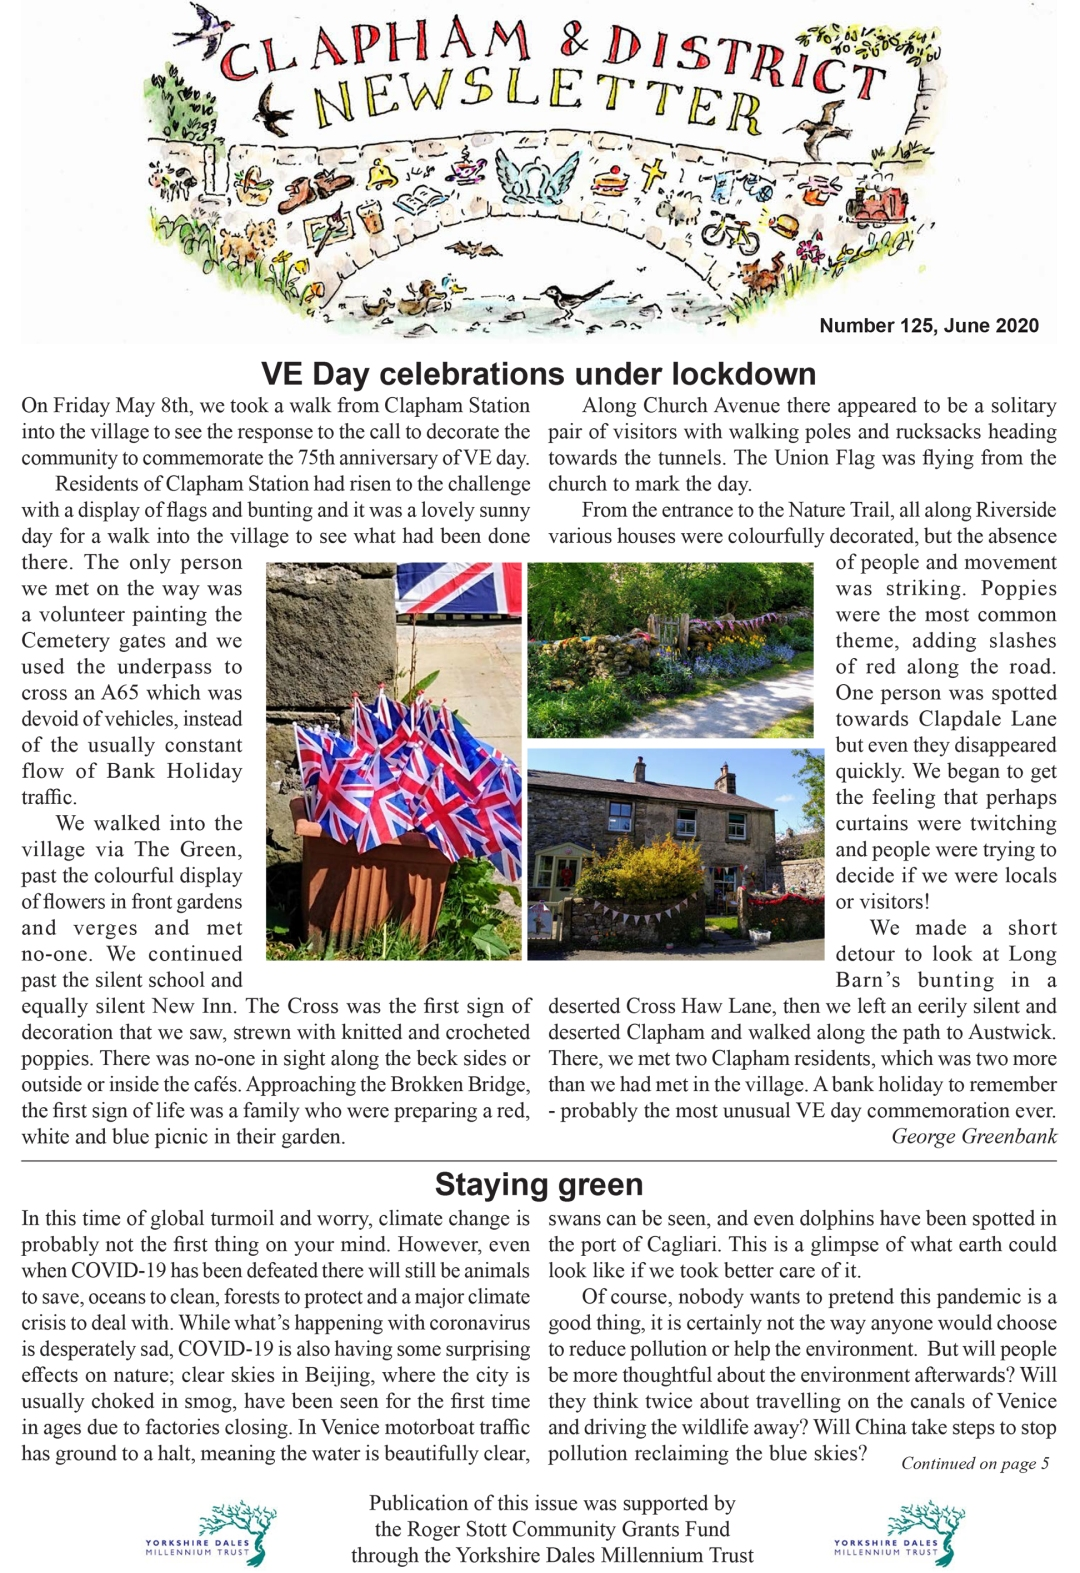 clapham-newsletter-125-june-2020-1